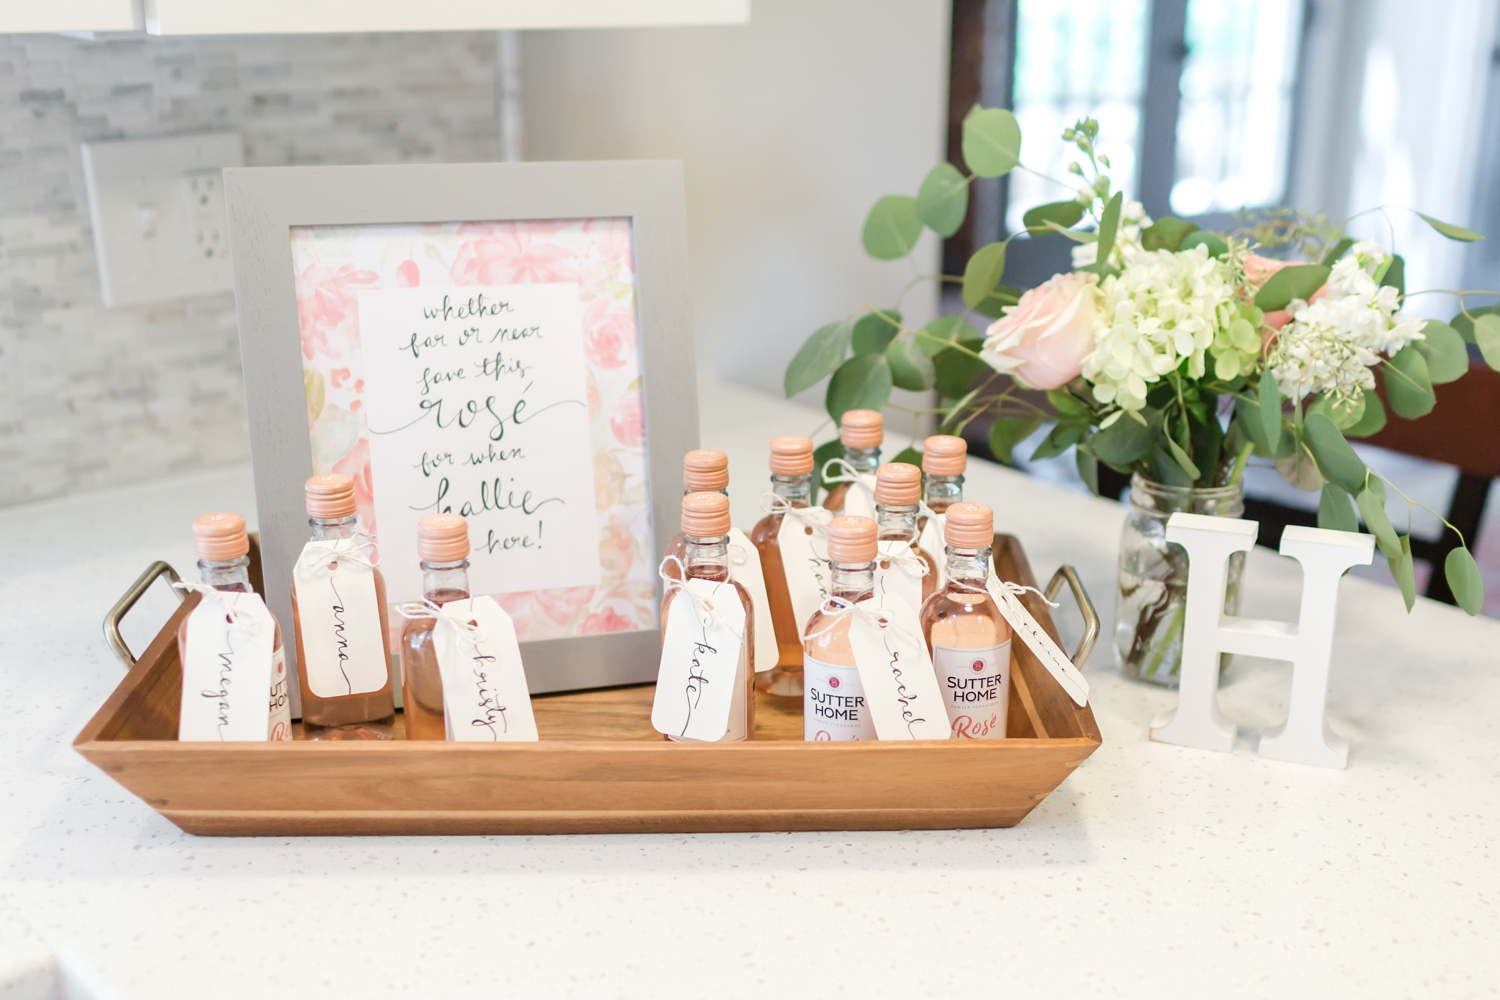 The favors were a cute little bottle of rosé for everyone to pop and drink in celebration when Hallie is born!